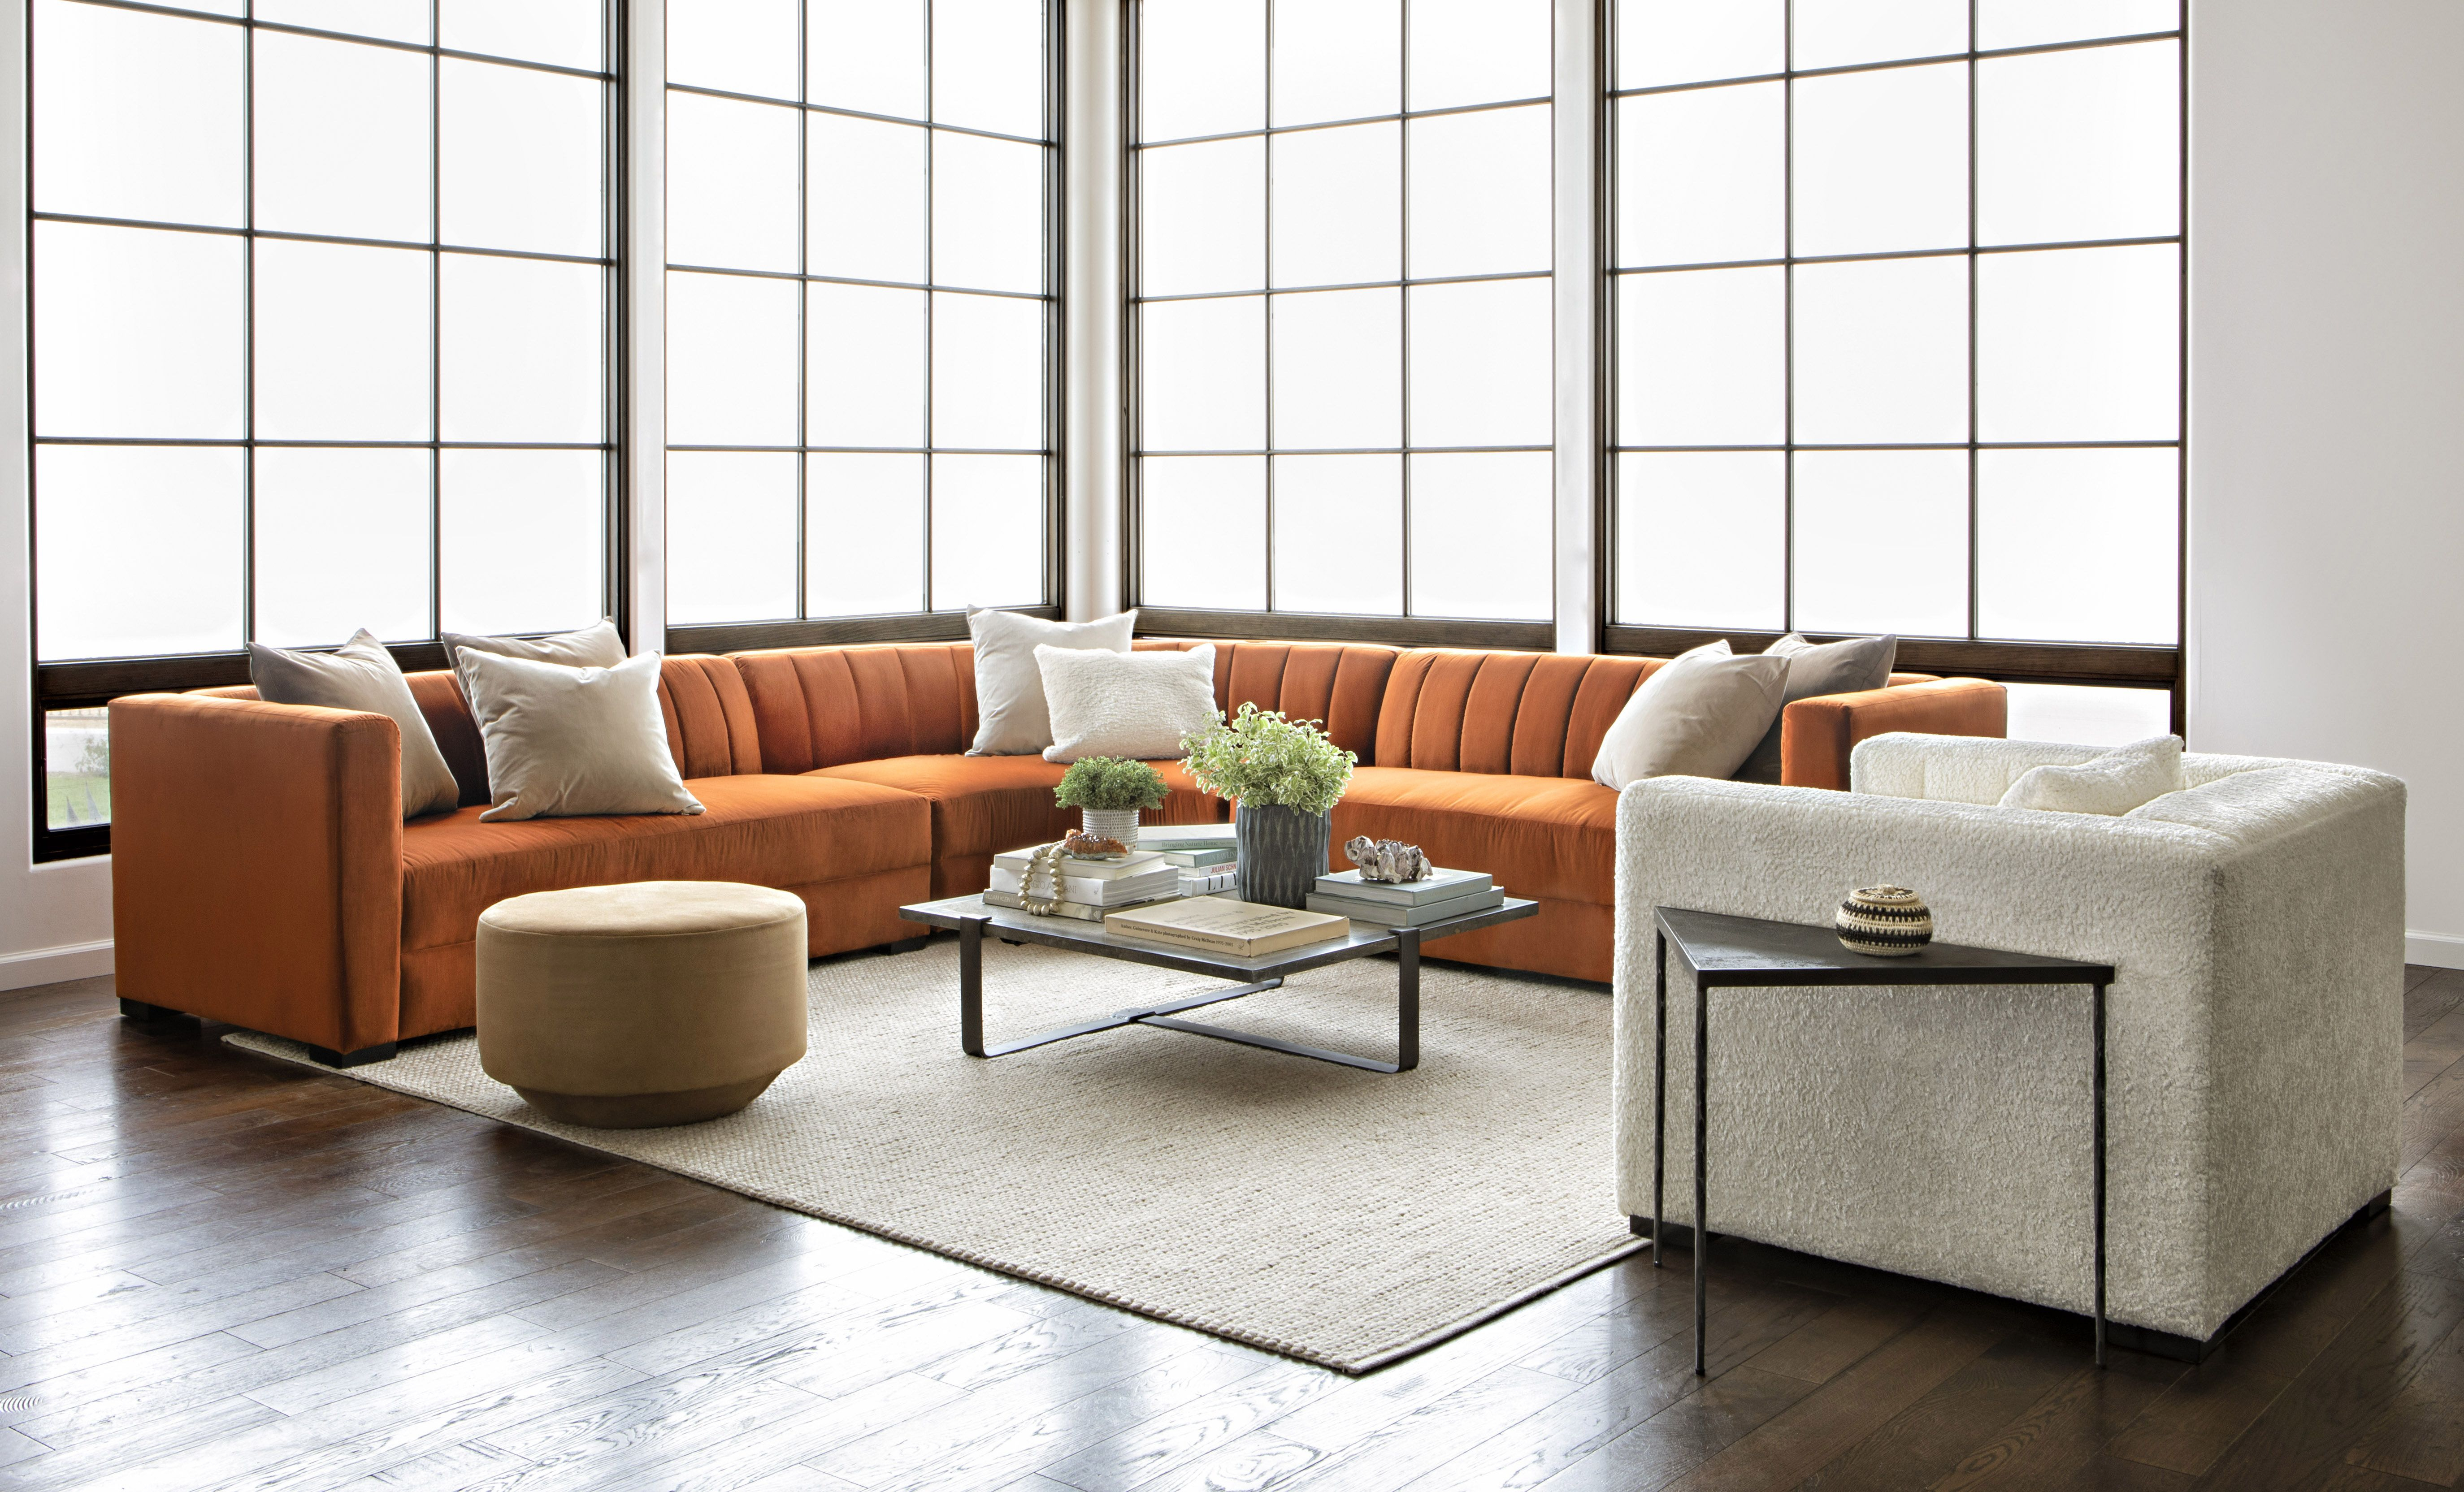 Soane 3 Piece Sectionalnate Berkus And Jeremiah Brent | Nate + With Regard To Matteo Arm Sofa Chairs By Nate Berkus And Jeremiah Brent (Image 19 of 20)